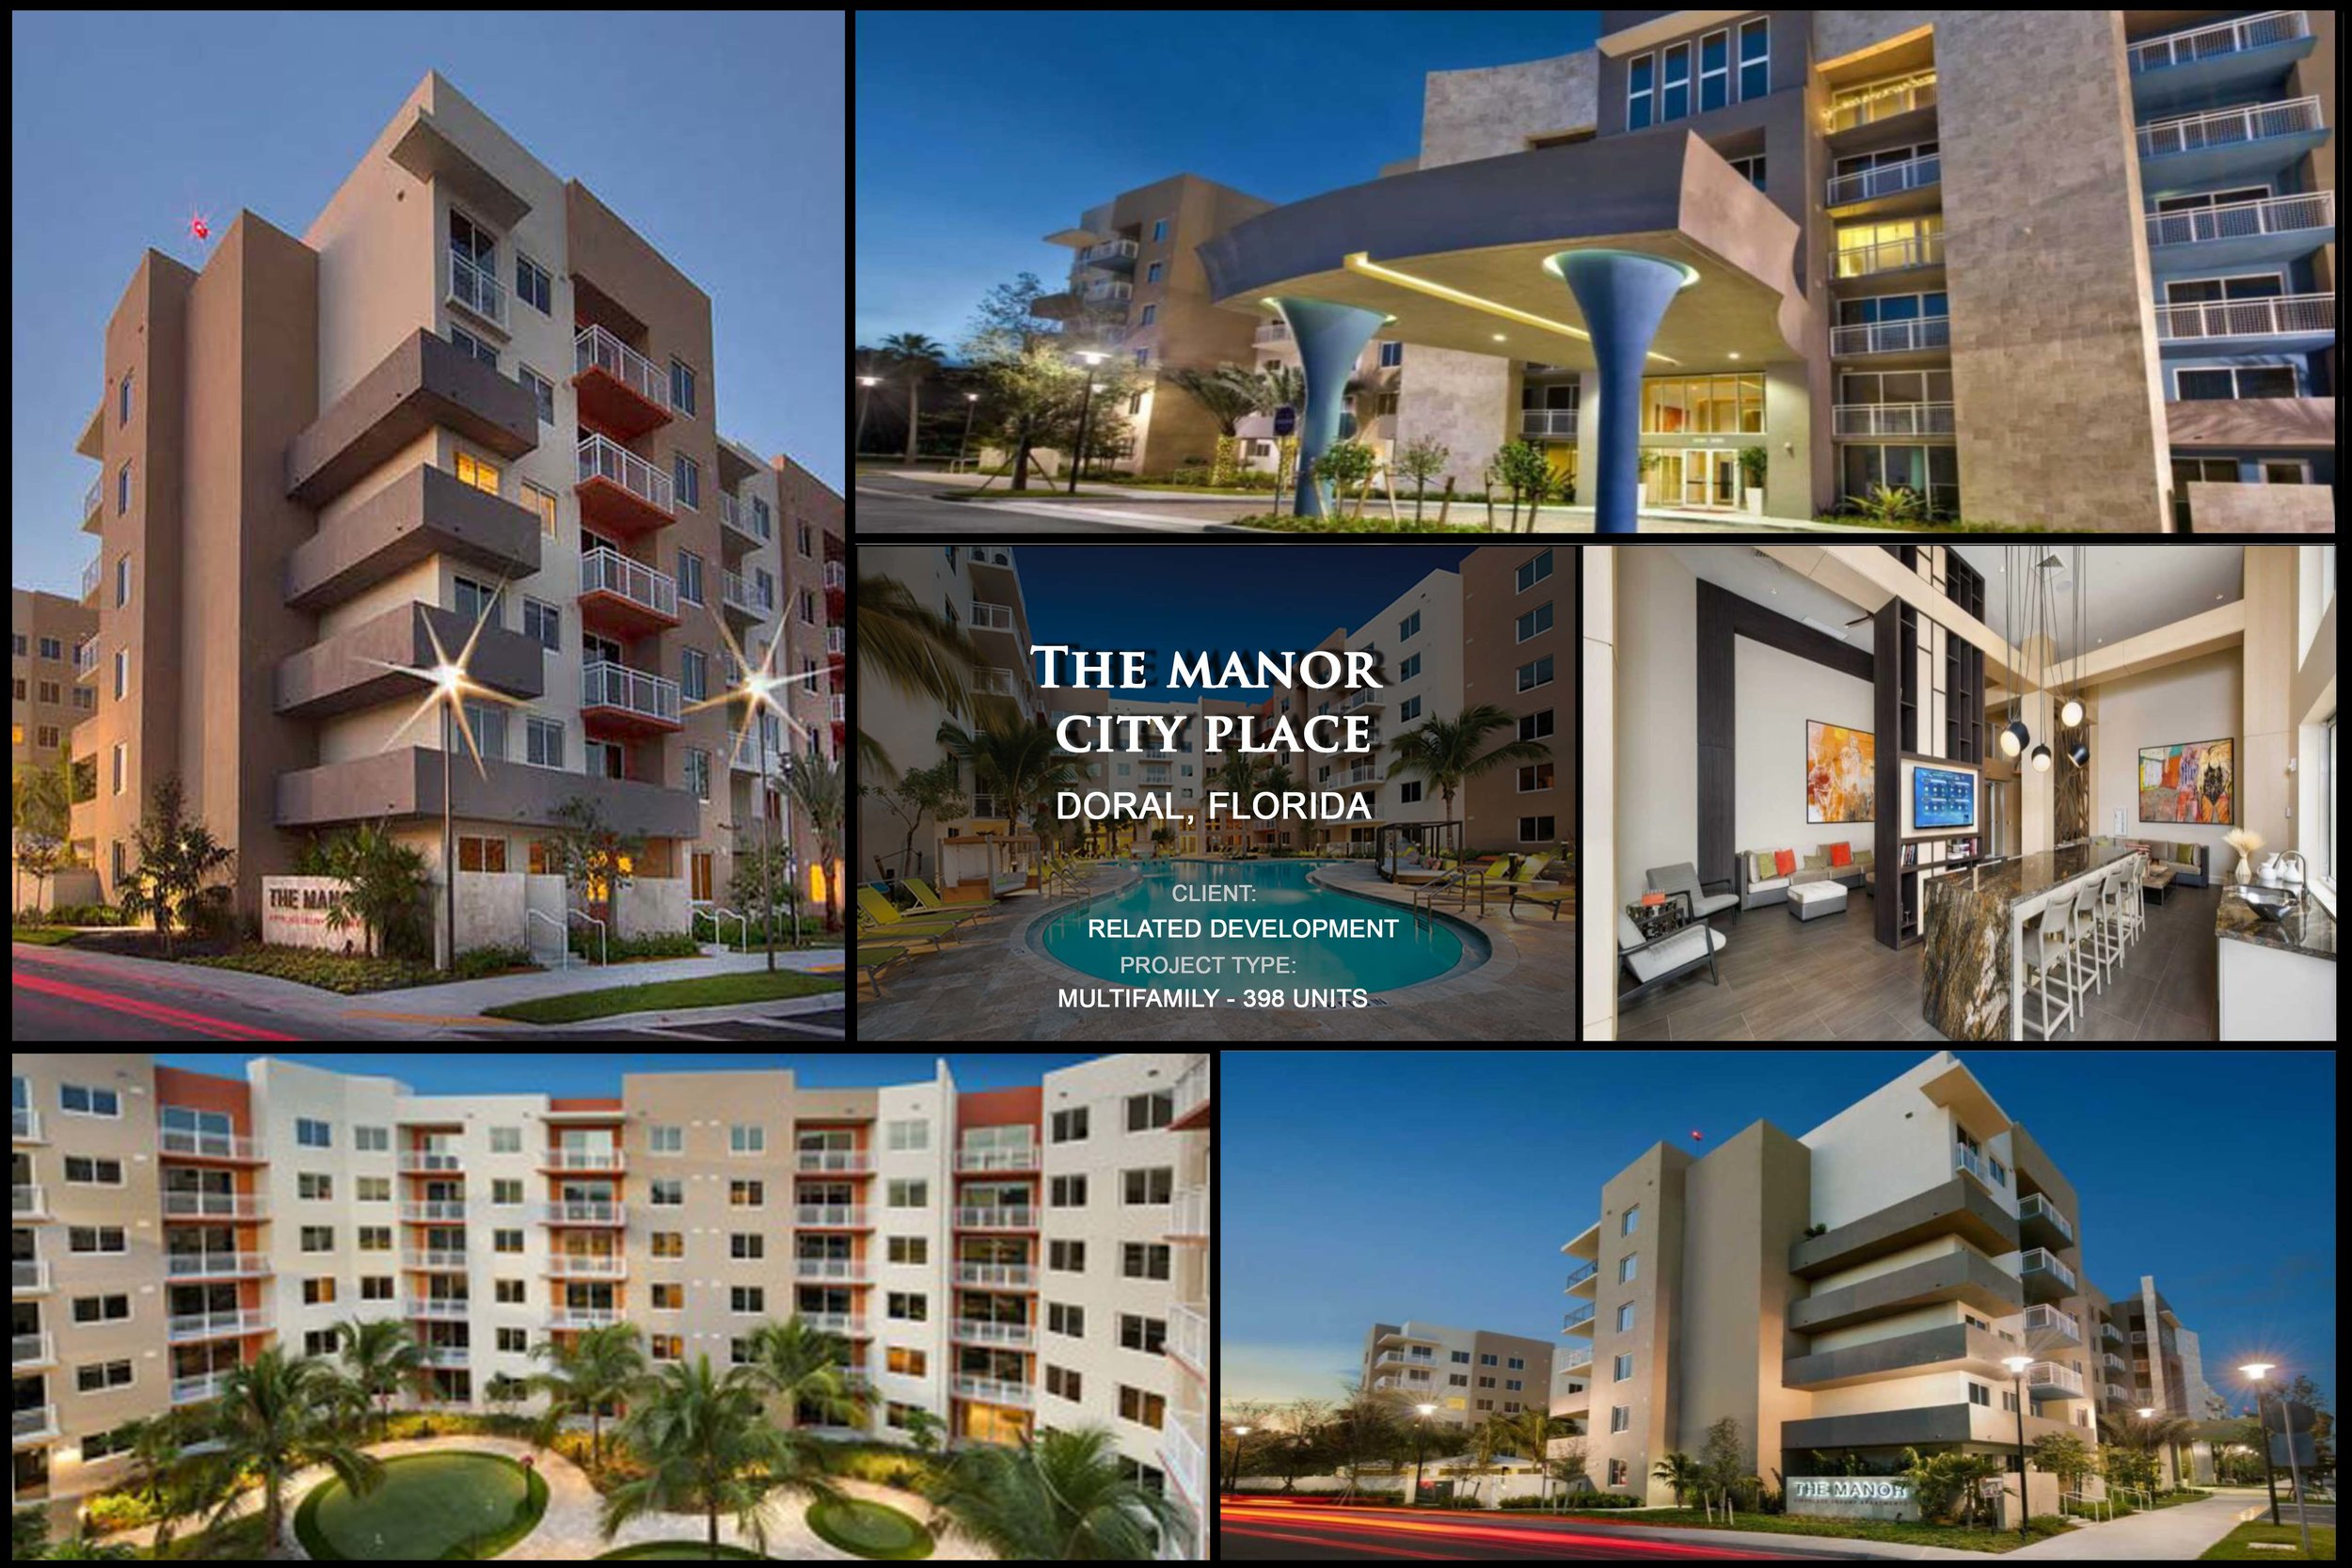 The Manor City Place